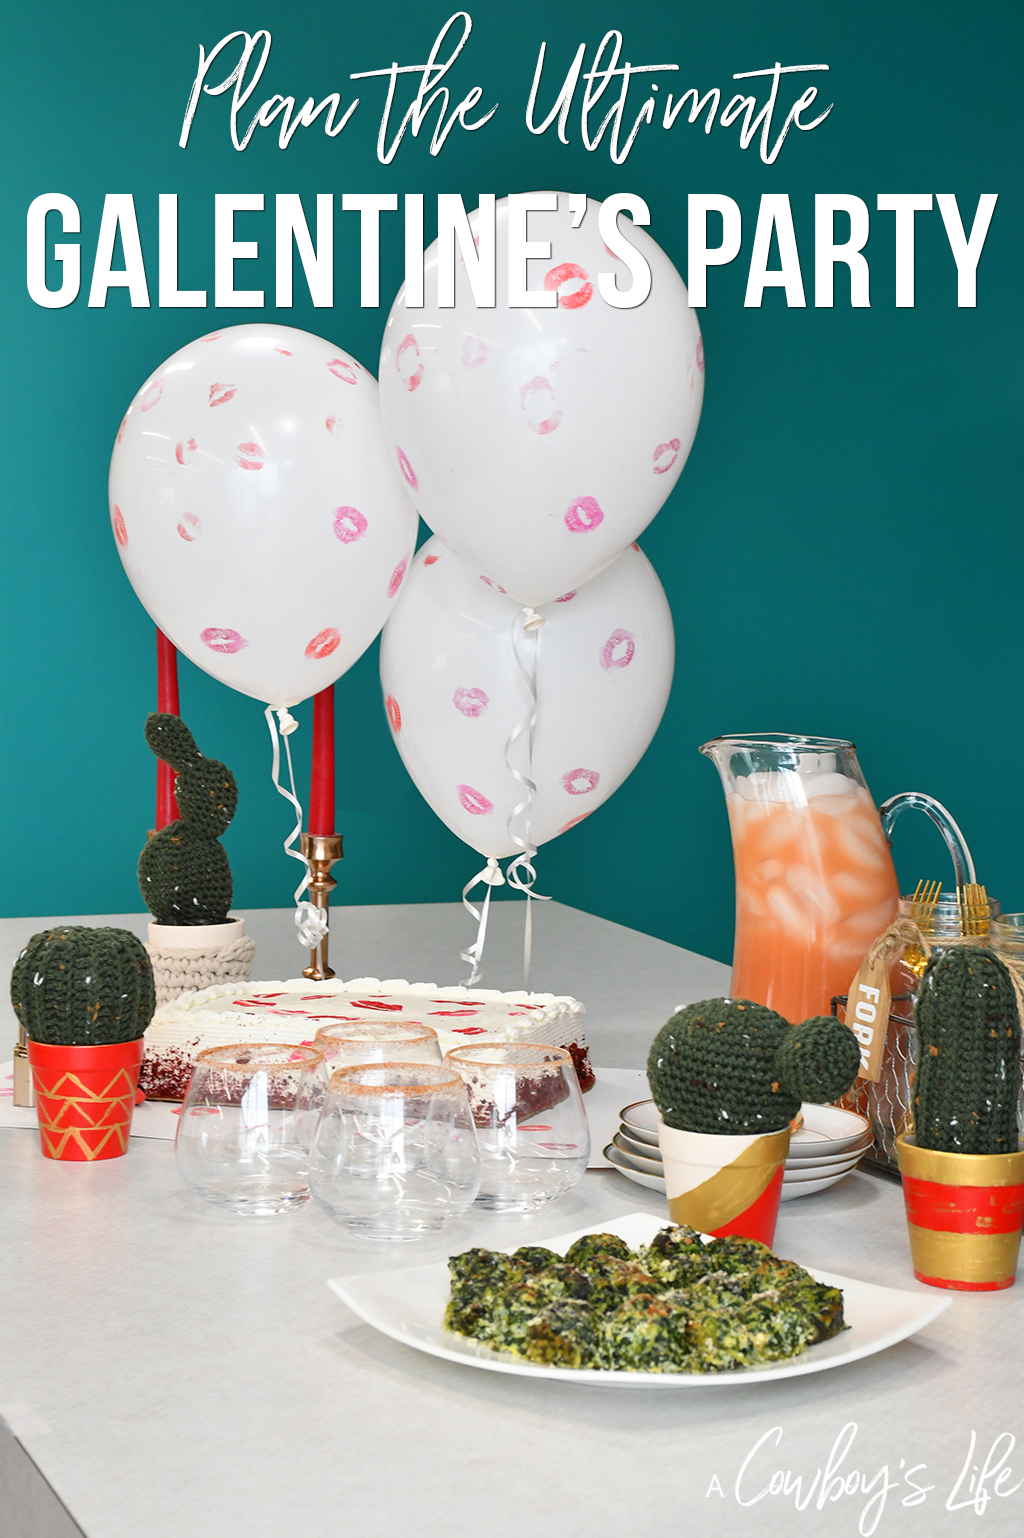 Grab your friends and show them how much they mean to you with a Galentine's soiree. This Jalapeño Grapefruit mocktail is a great way to spice up the party.